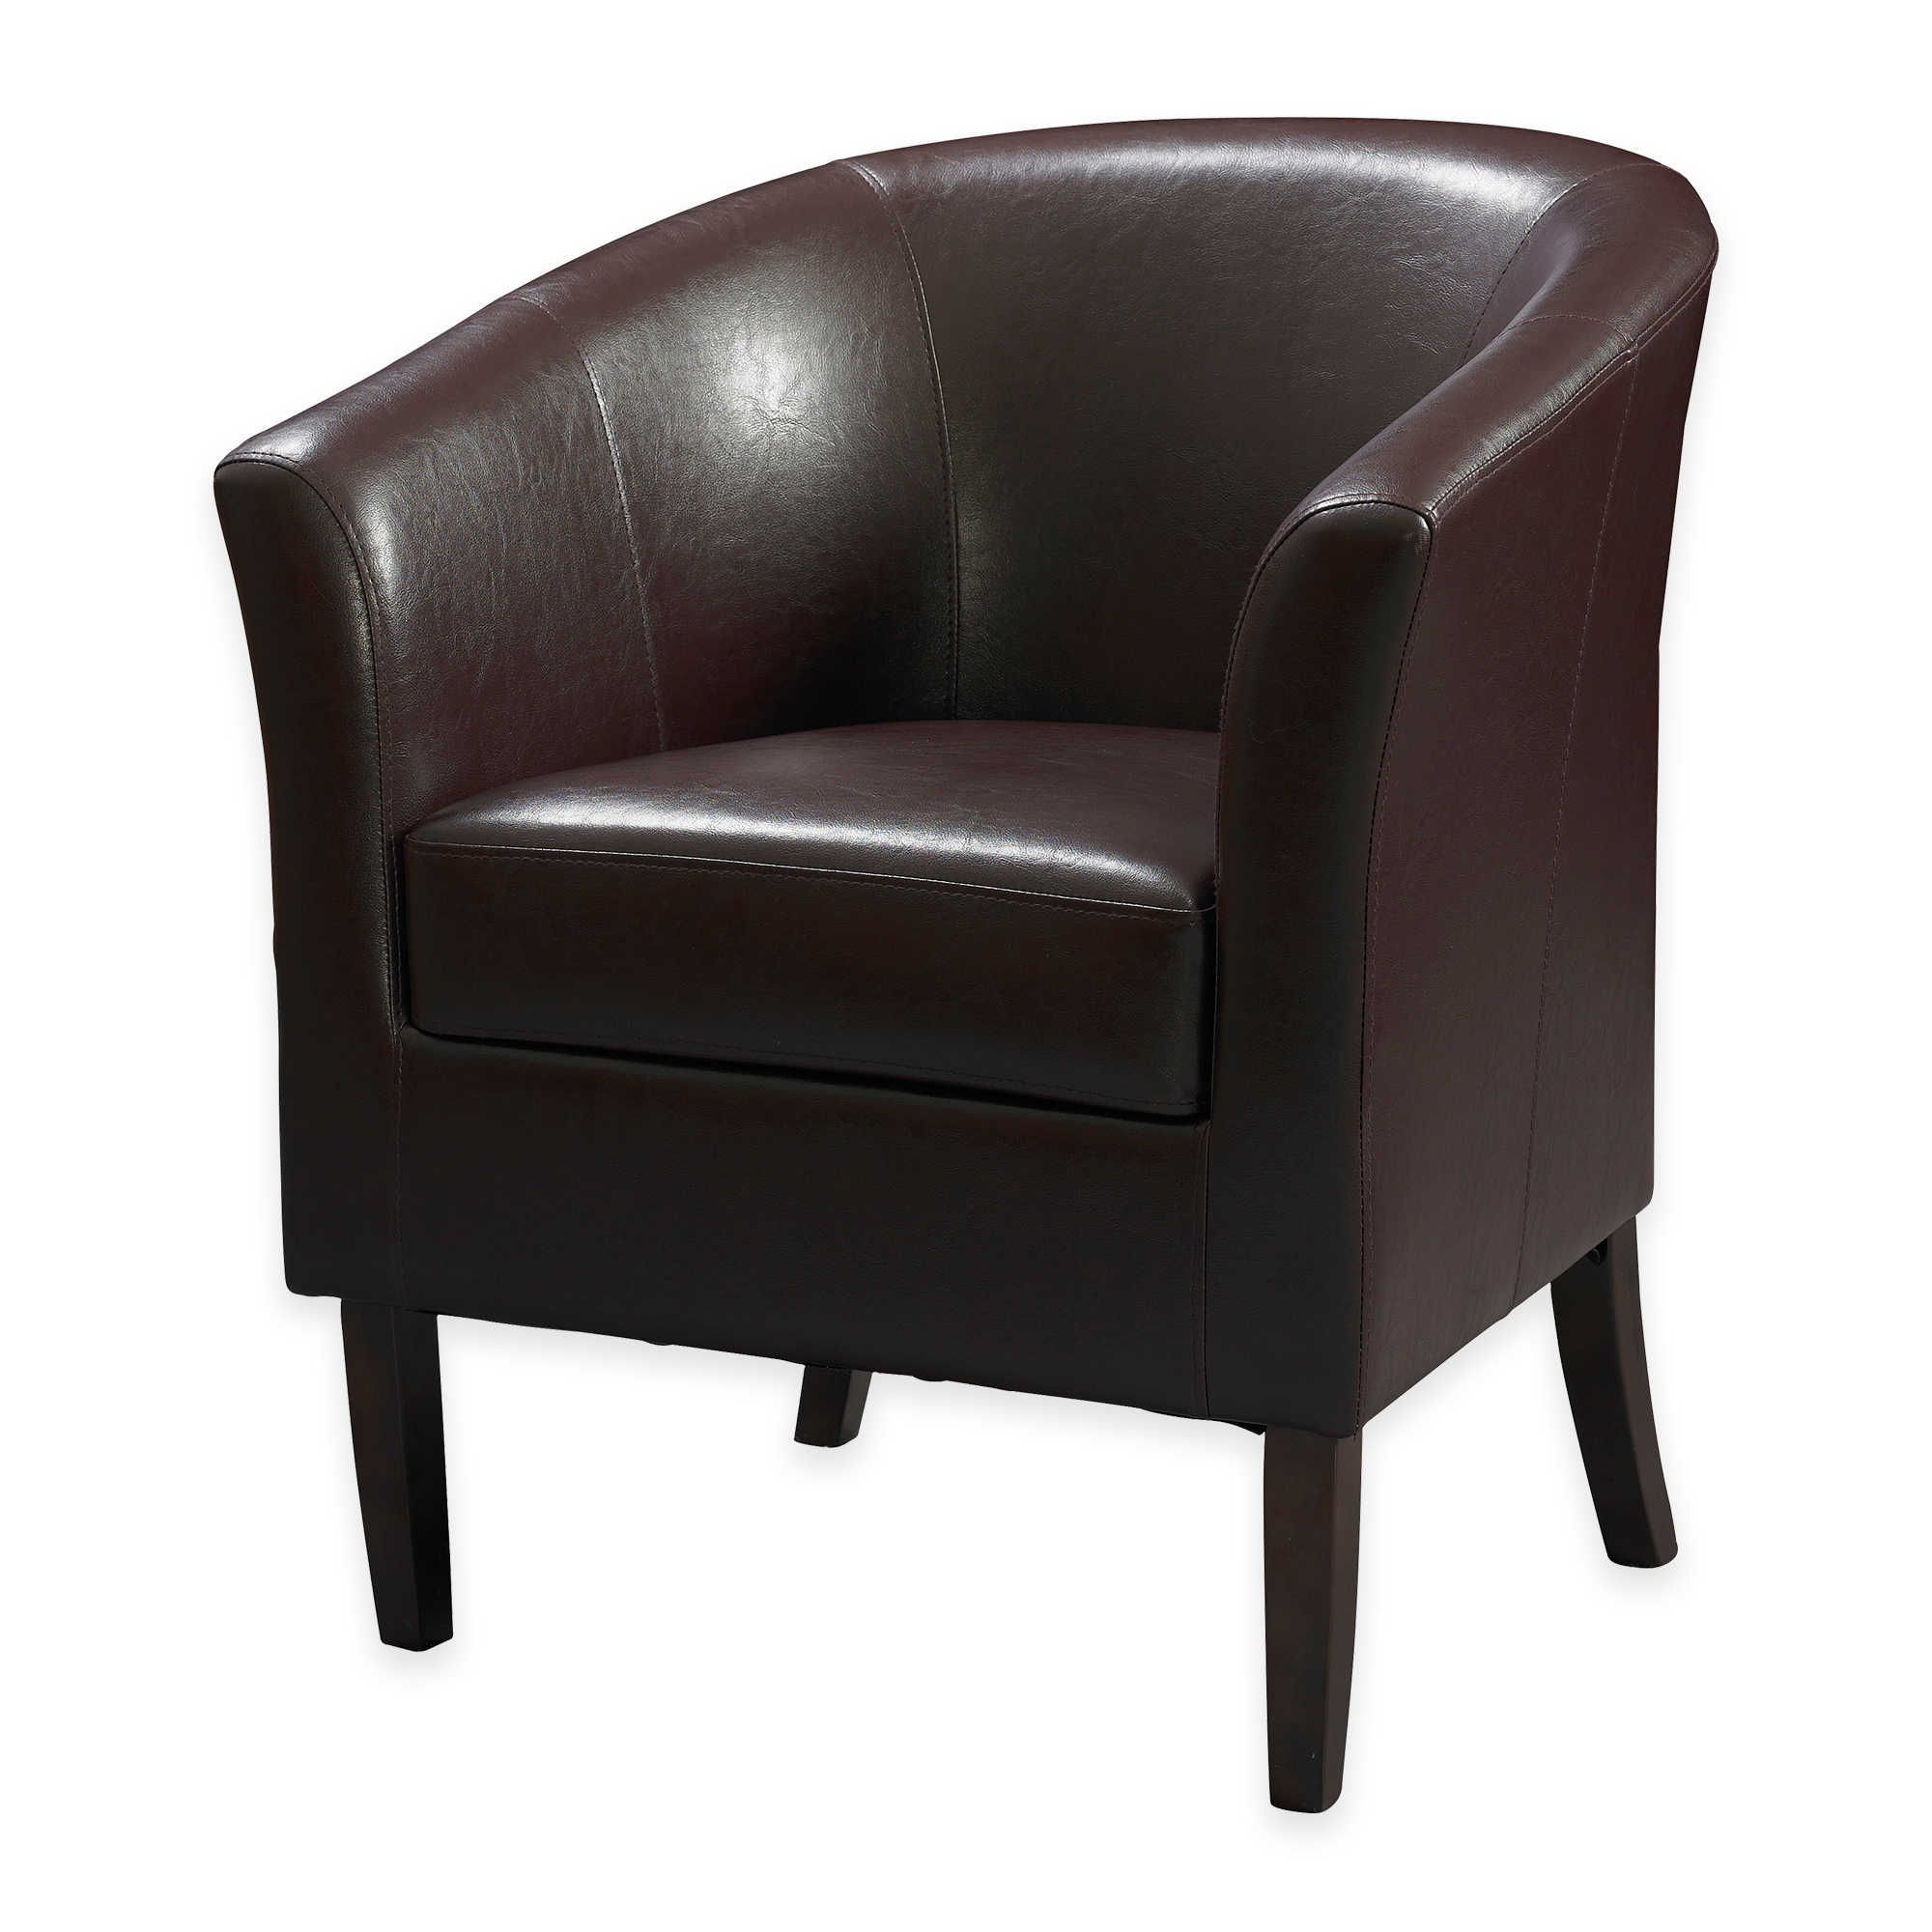 Best Compact Chair For A Small Space Faux Leather Adds 640 x 480